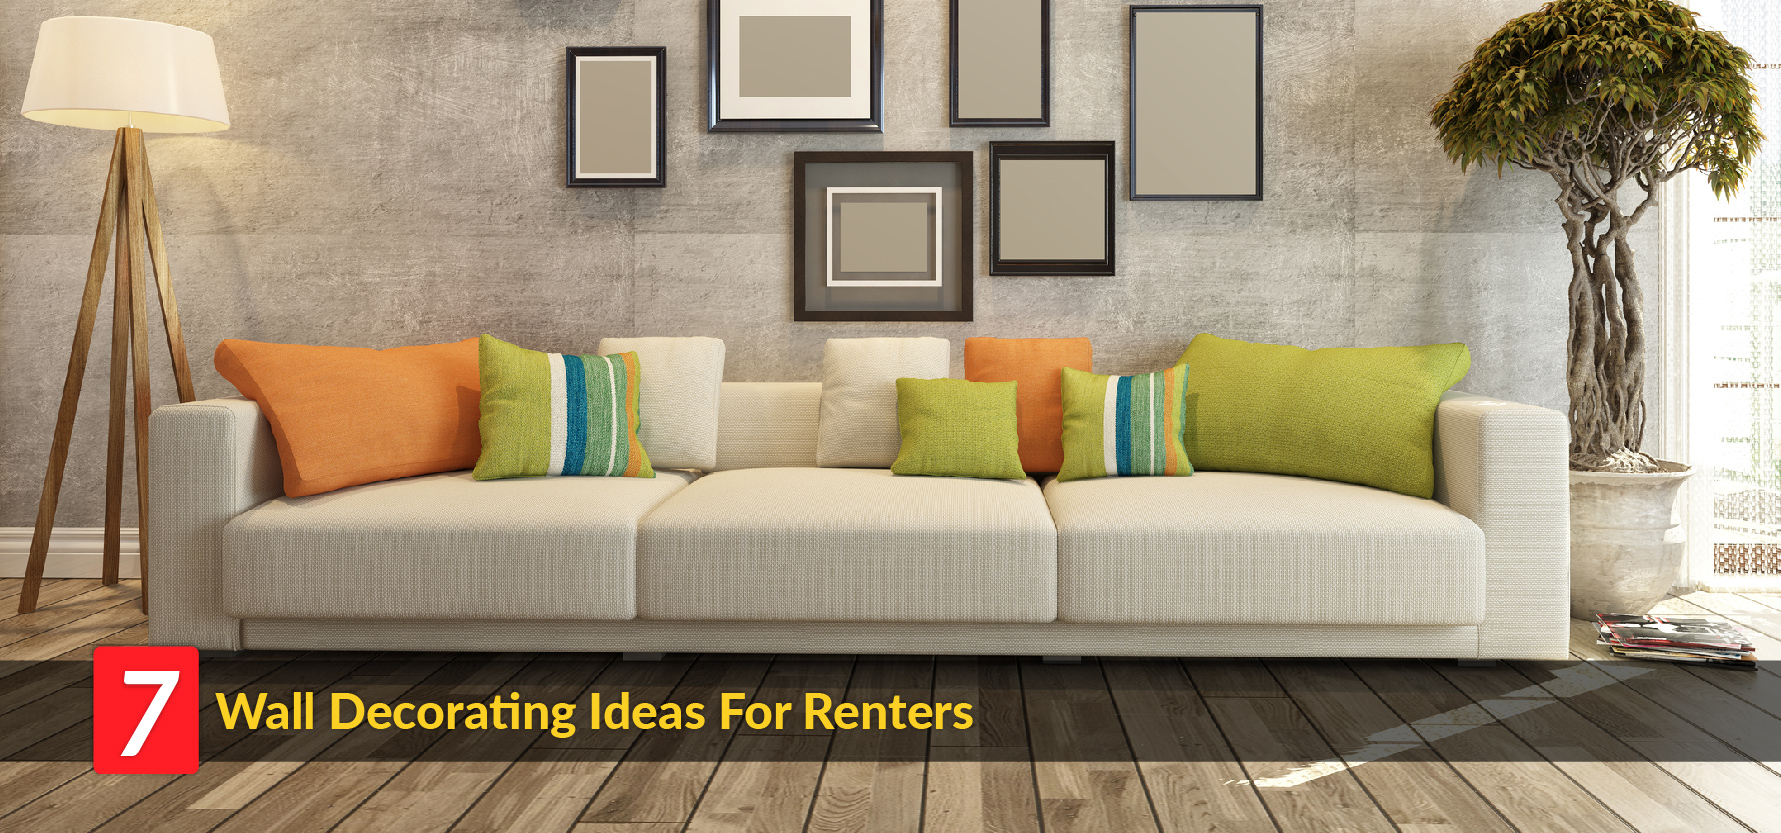 home d cor ideas here how renters can decorate walls